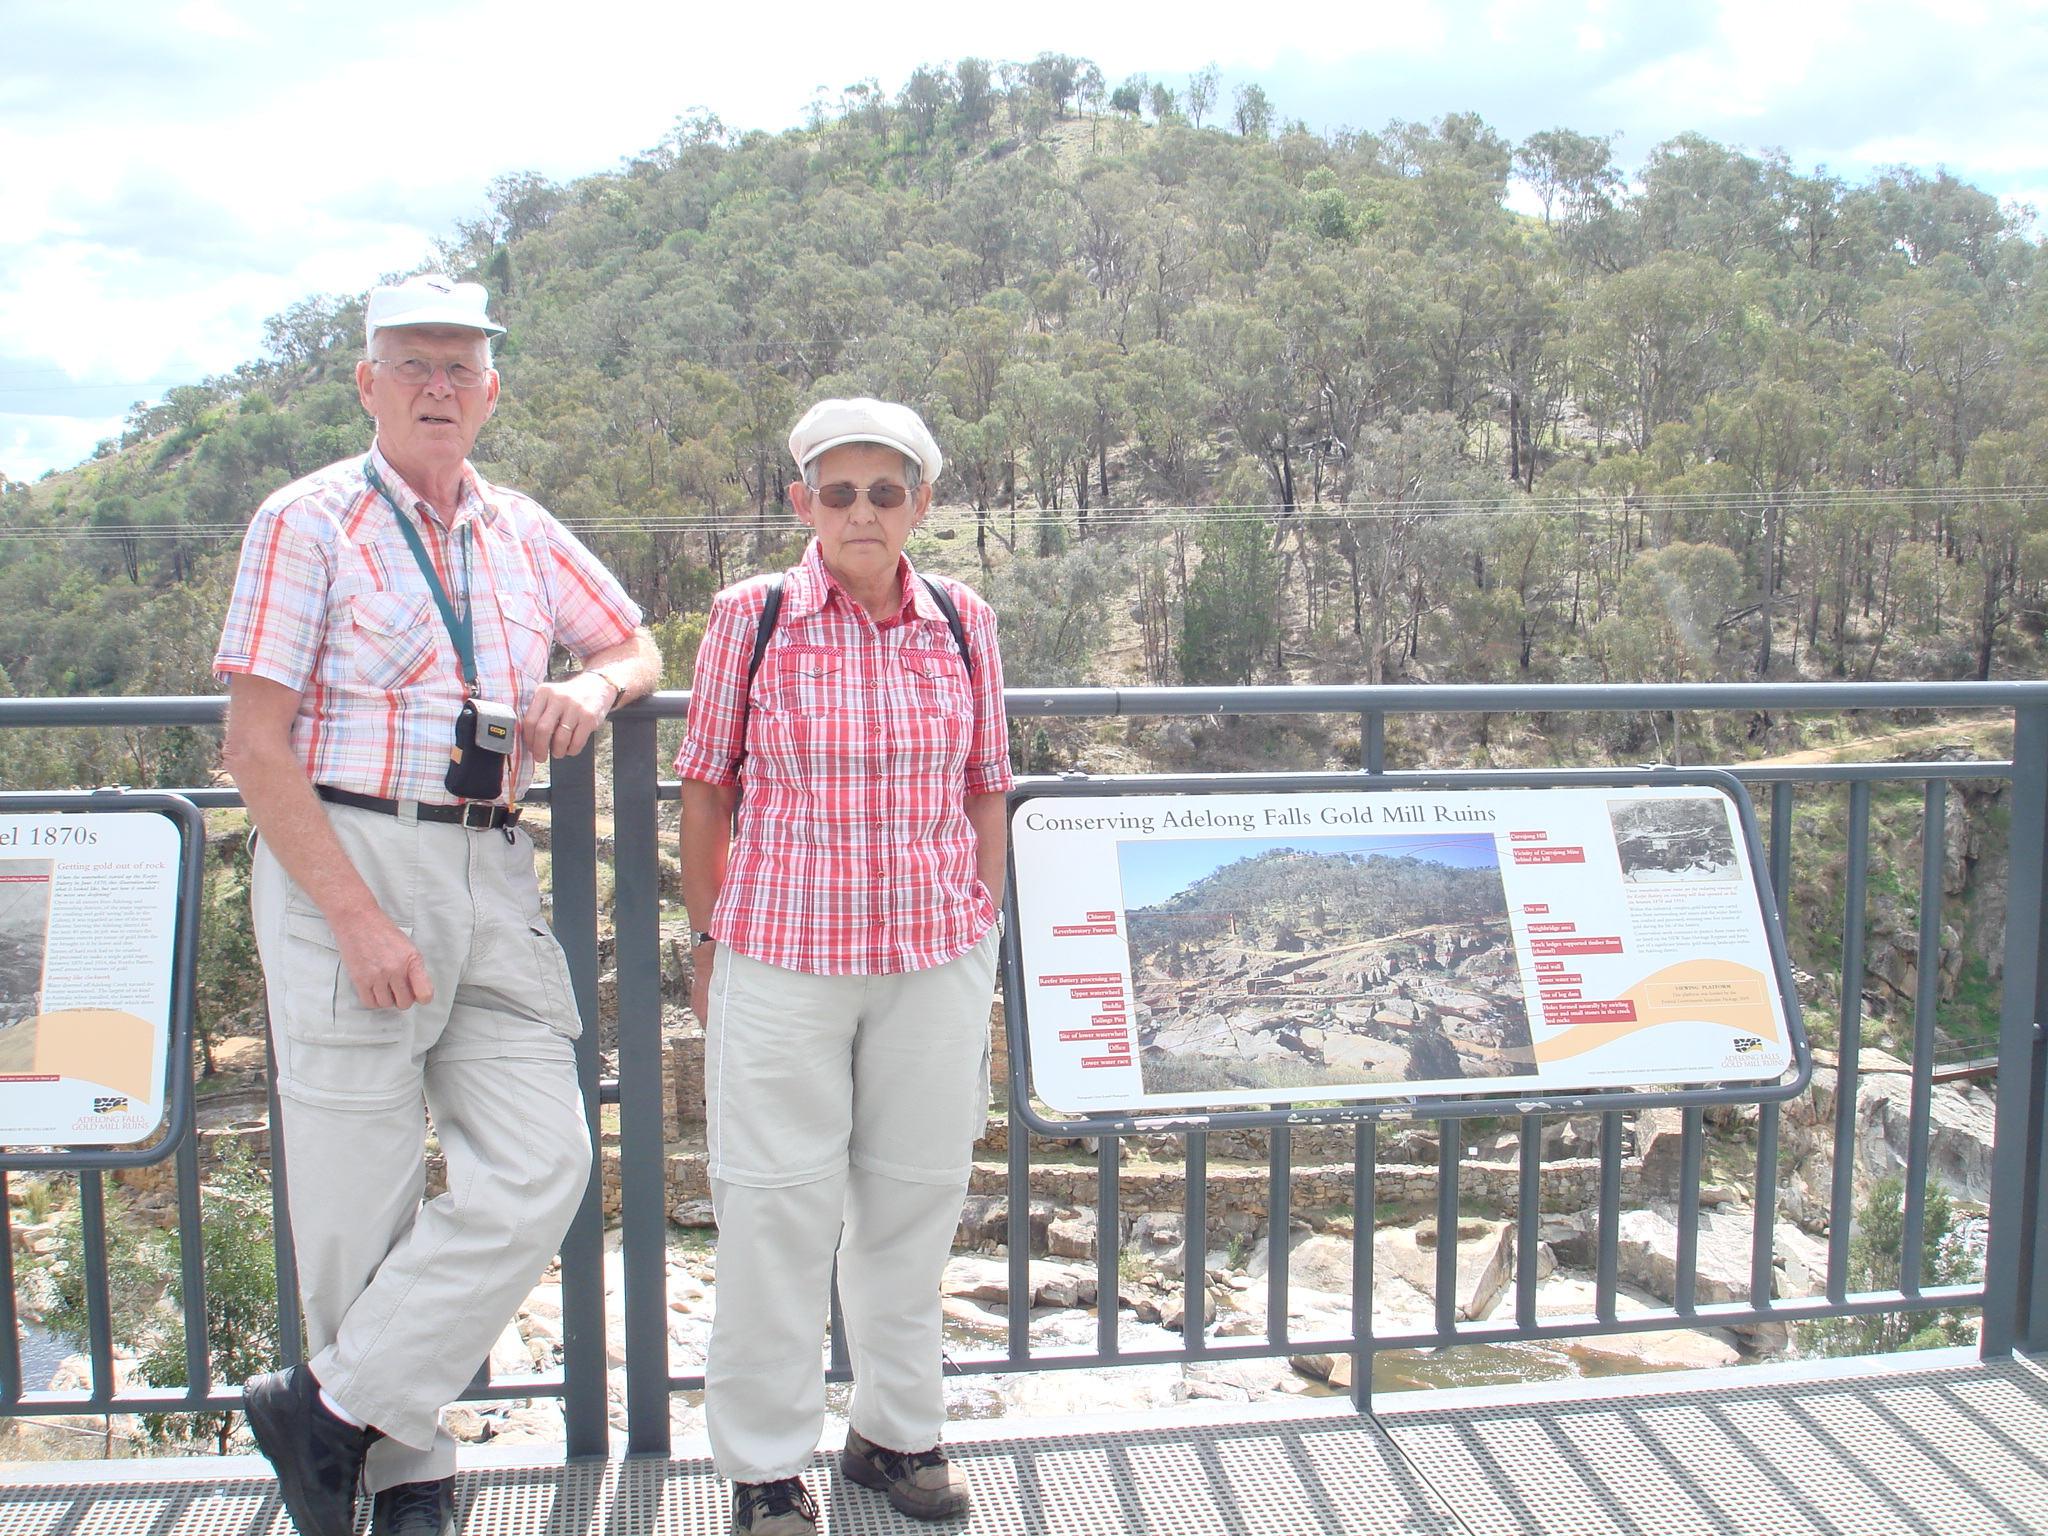 A man and a woman in front of a sign for Adelong Falls Gold Mill Ruins.